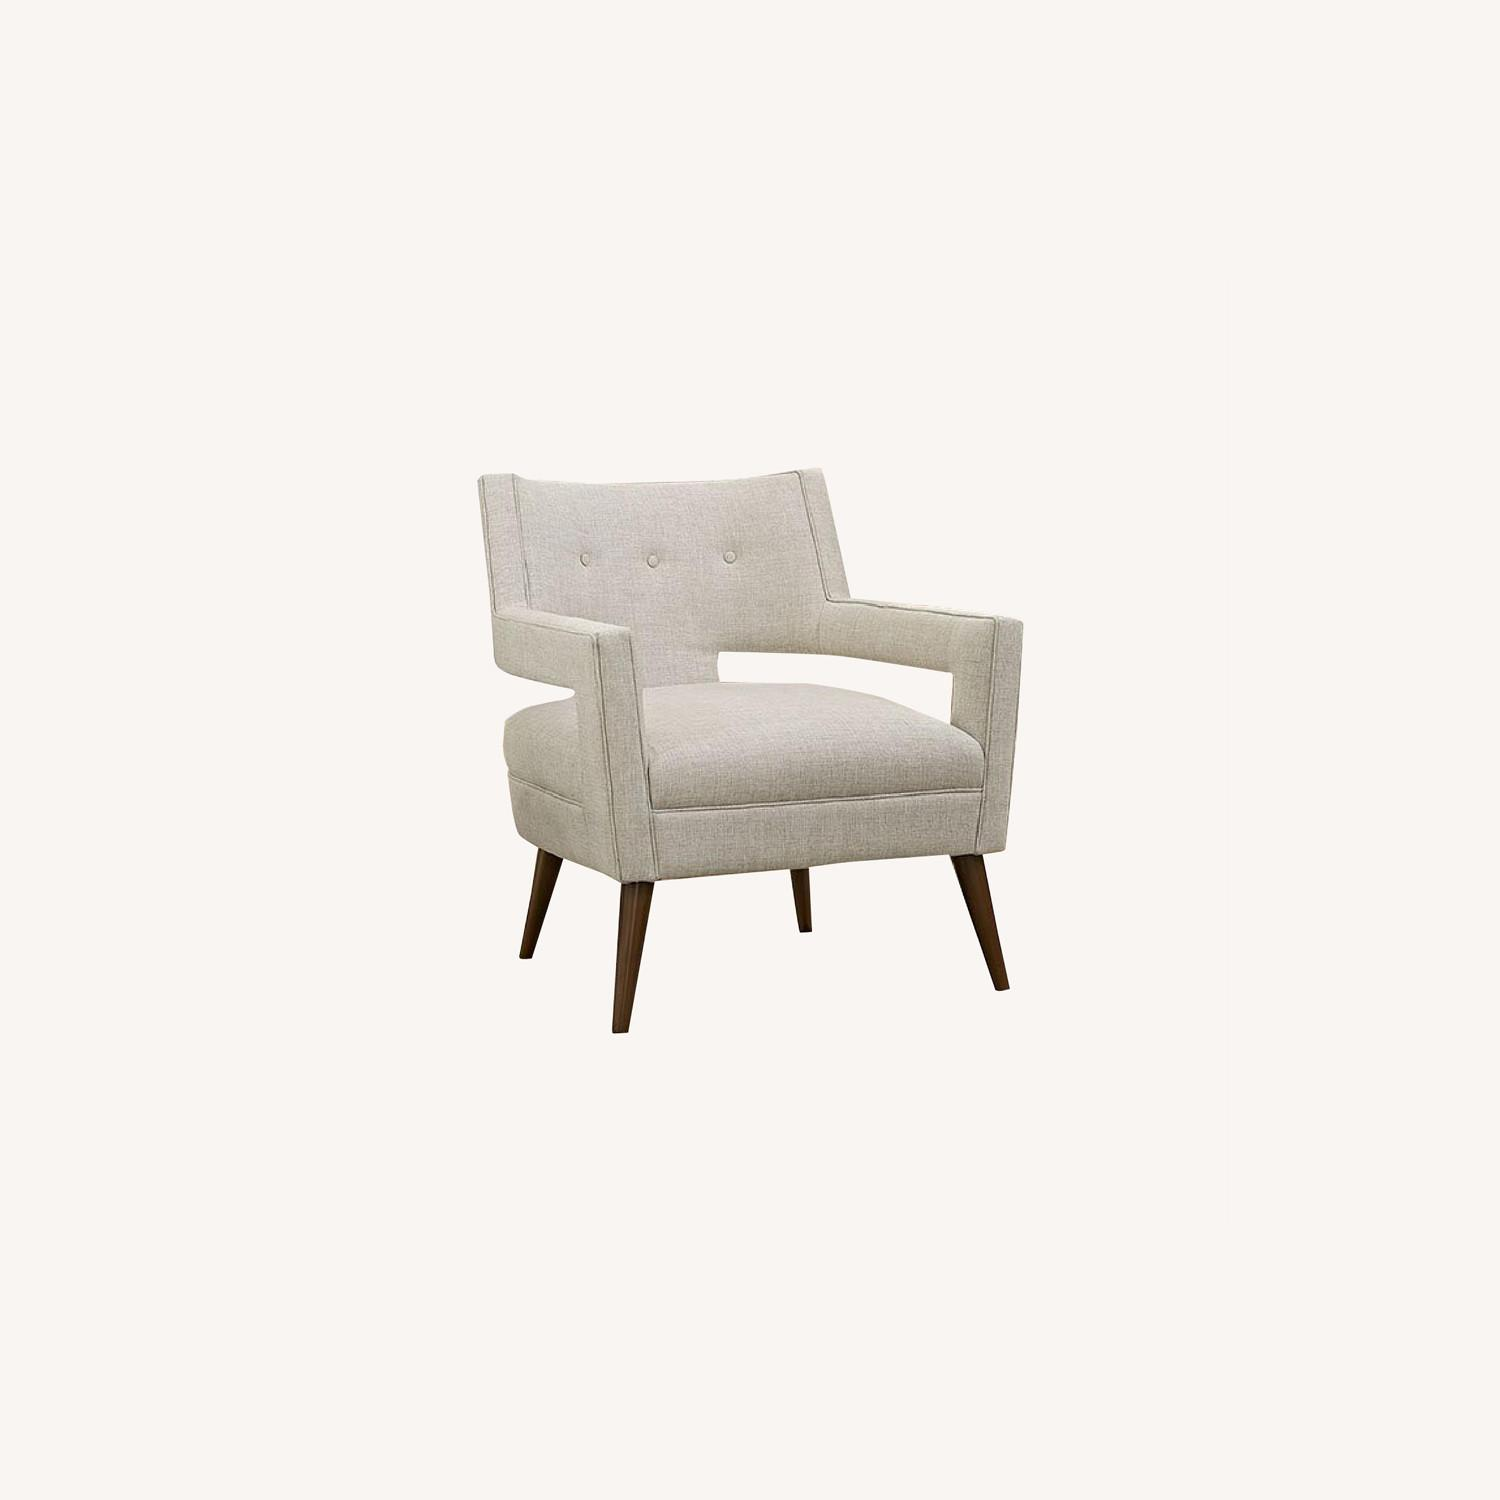 Modway Tufted Armchair - image-0